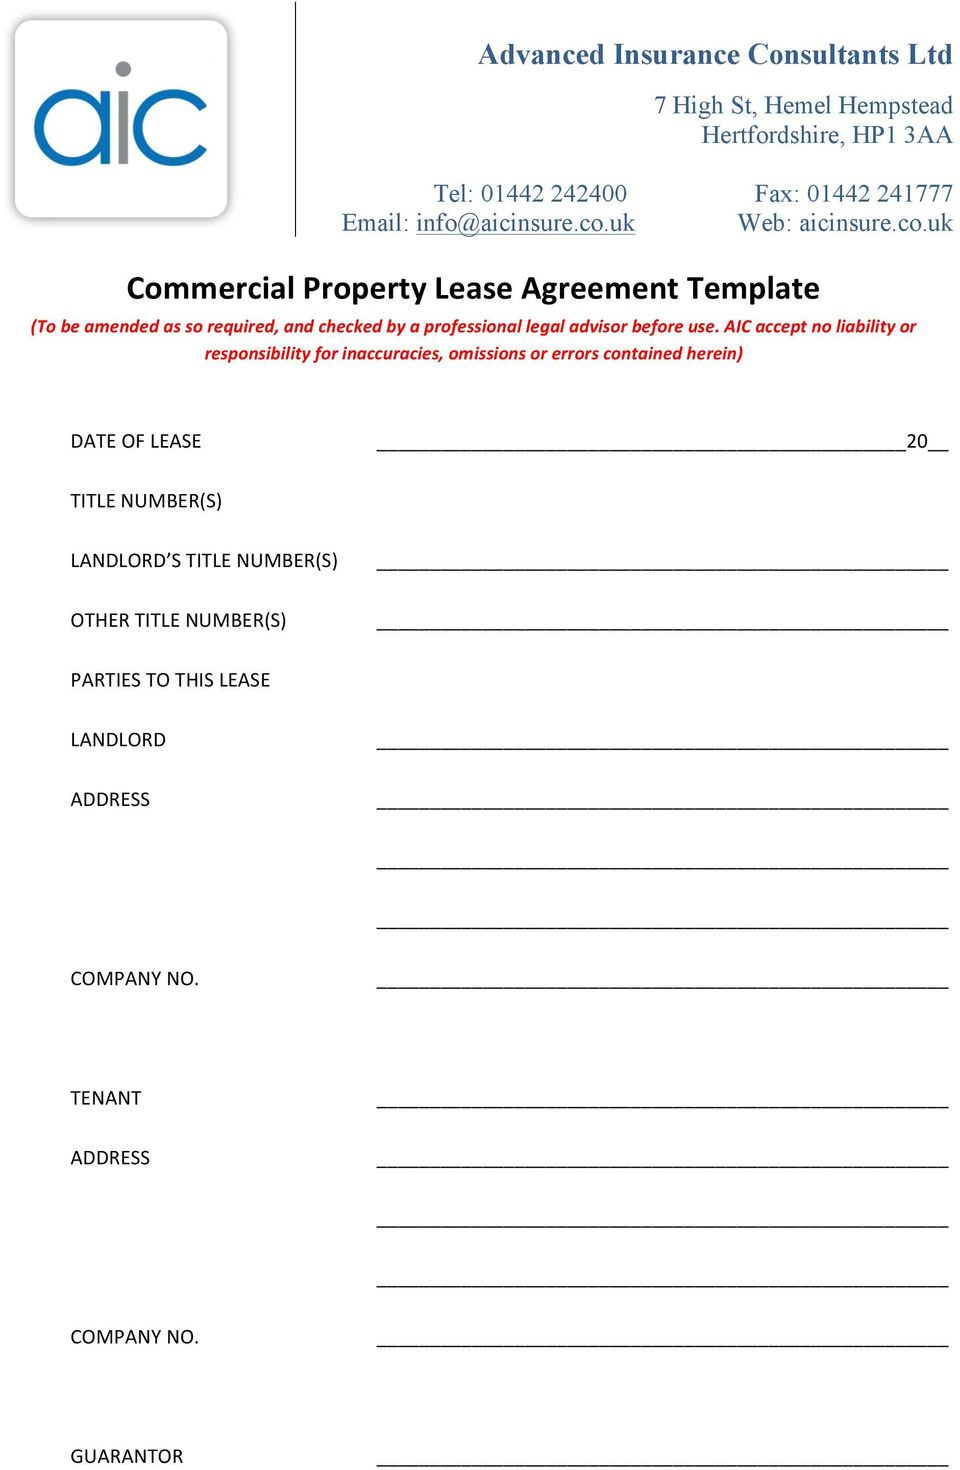 AIC accept no liability or responsibility for inaccuracies, omissions or errors contained herein) DATE OF LEASE 20 TITLE NUMBER(S) LANDLORD S